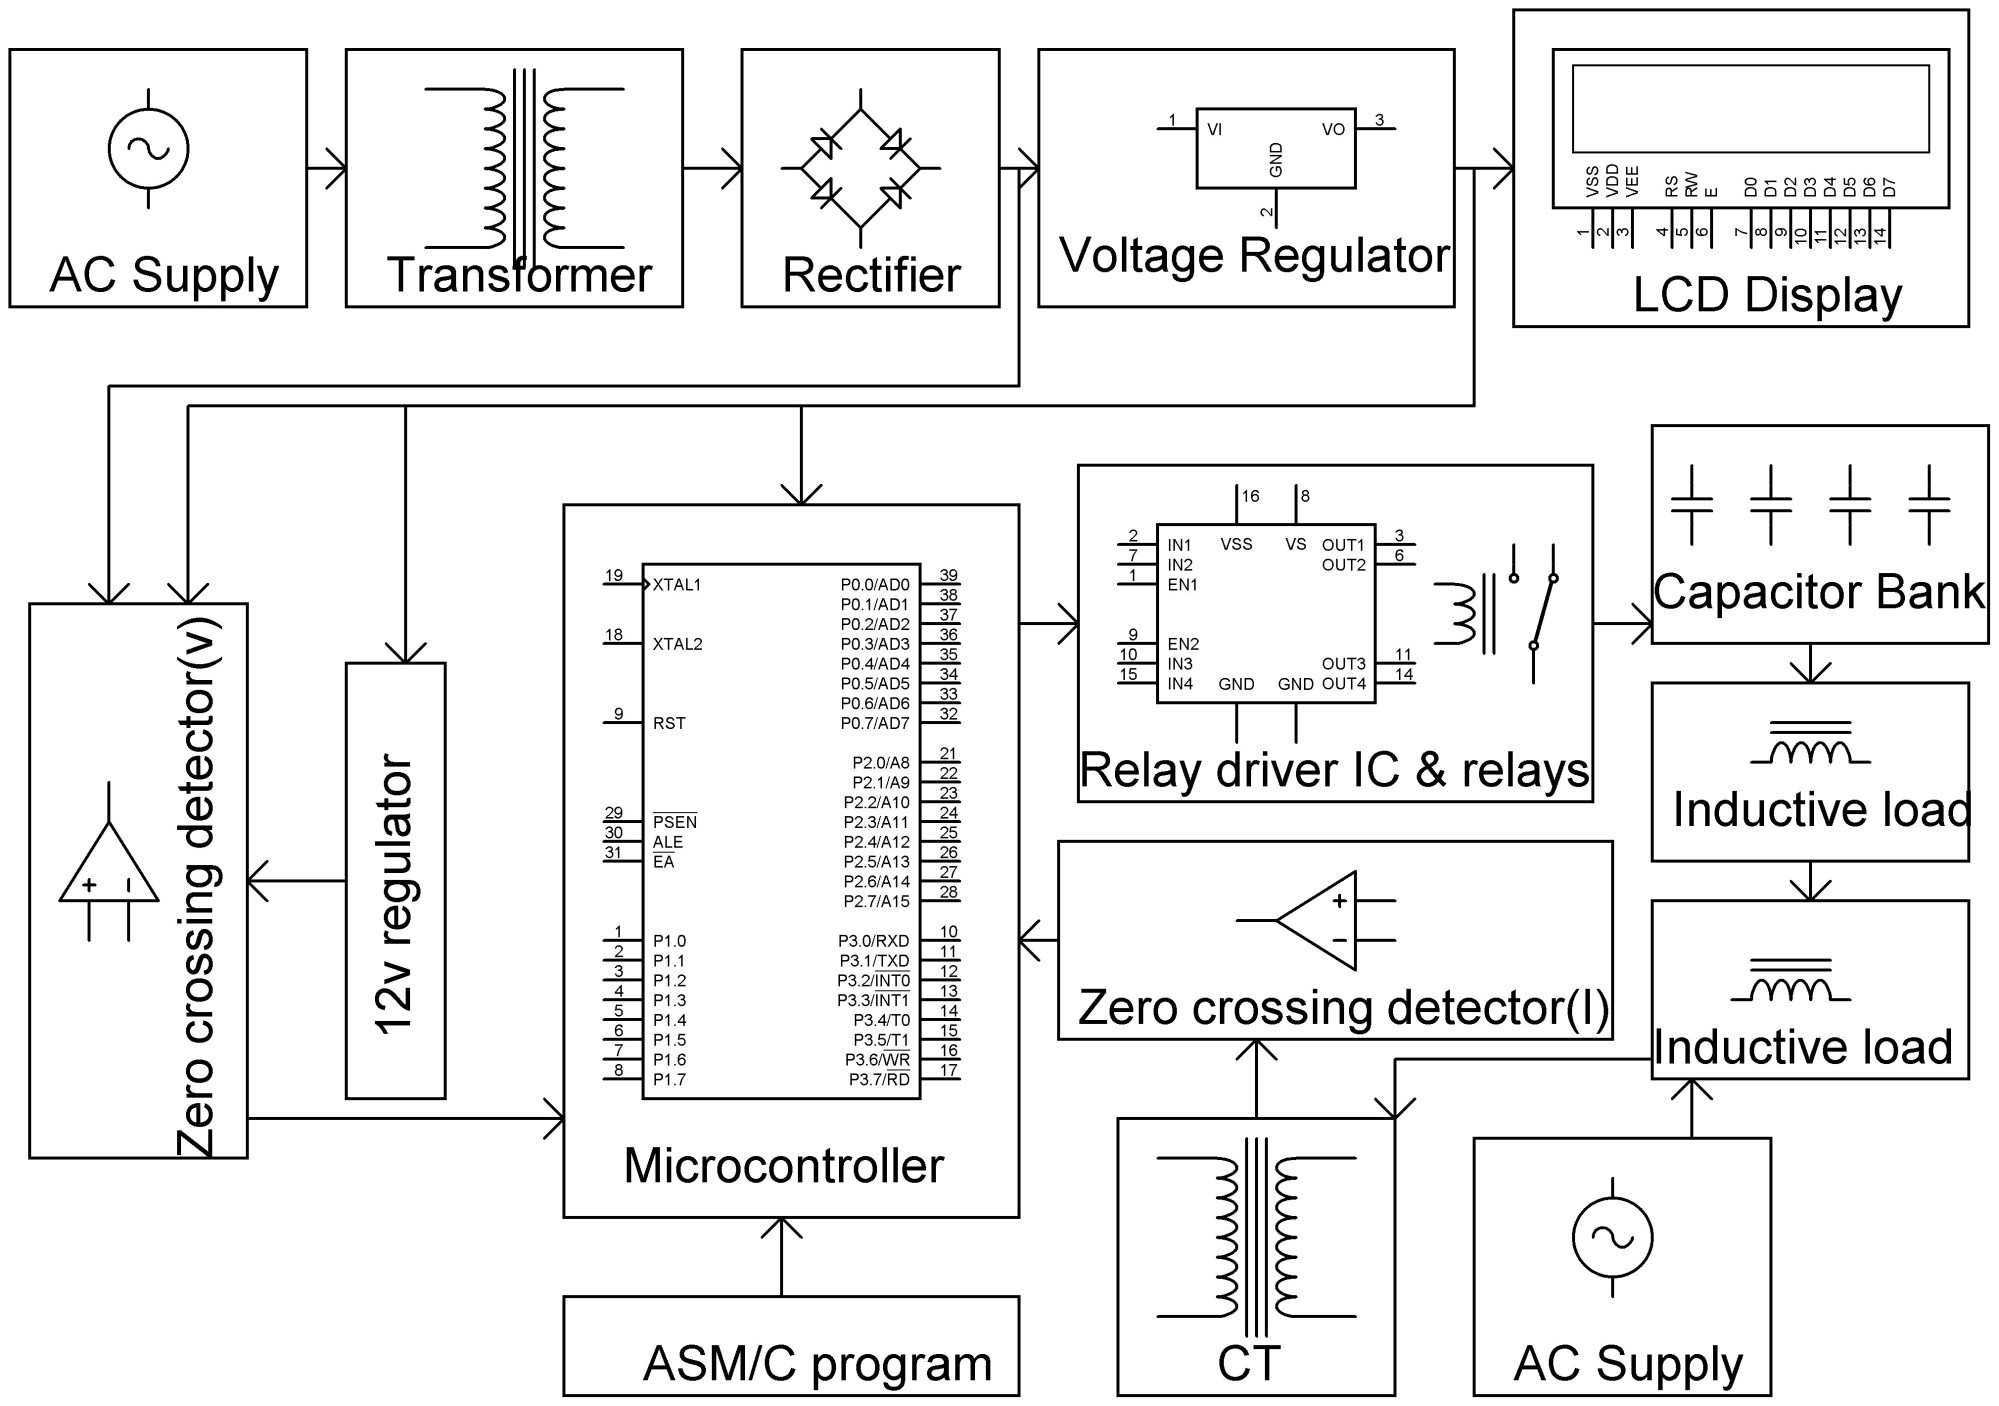 hight resolution of automatic power factor compensation for industrial power use to power factor controller using pic microcontroller circuit diagram